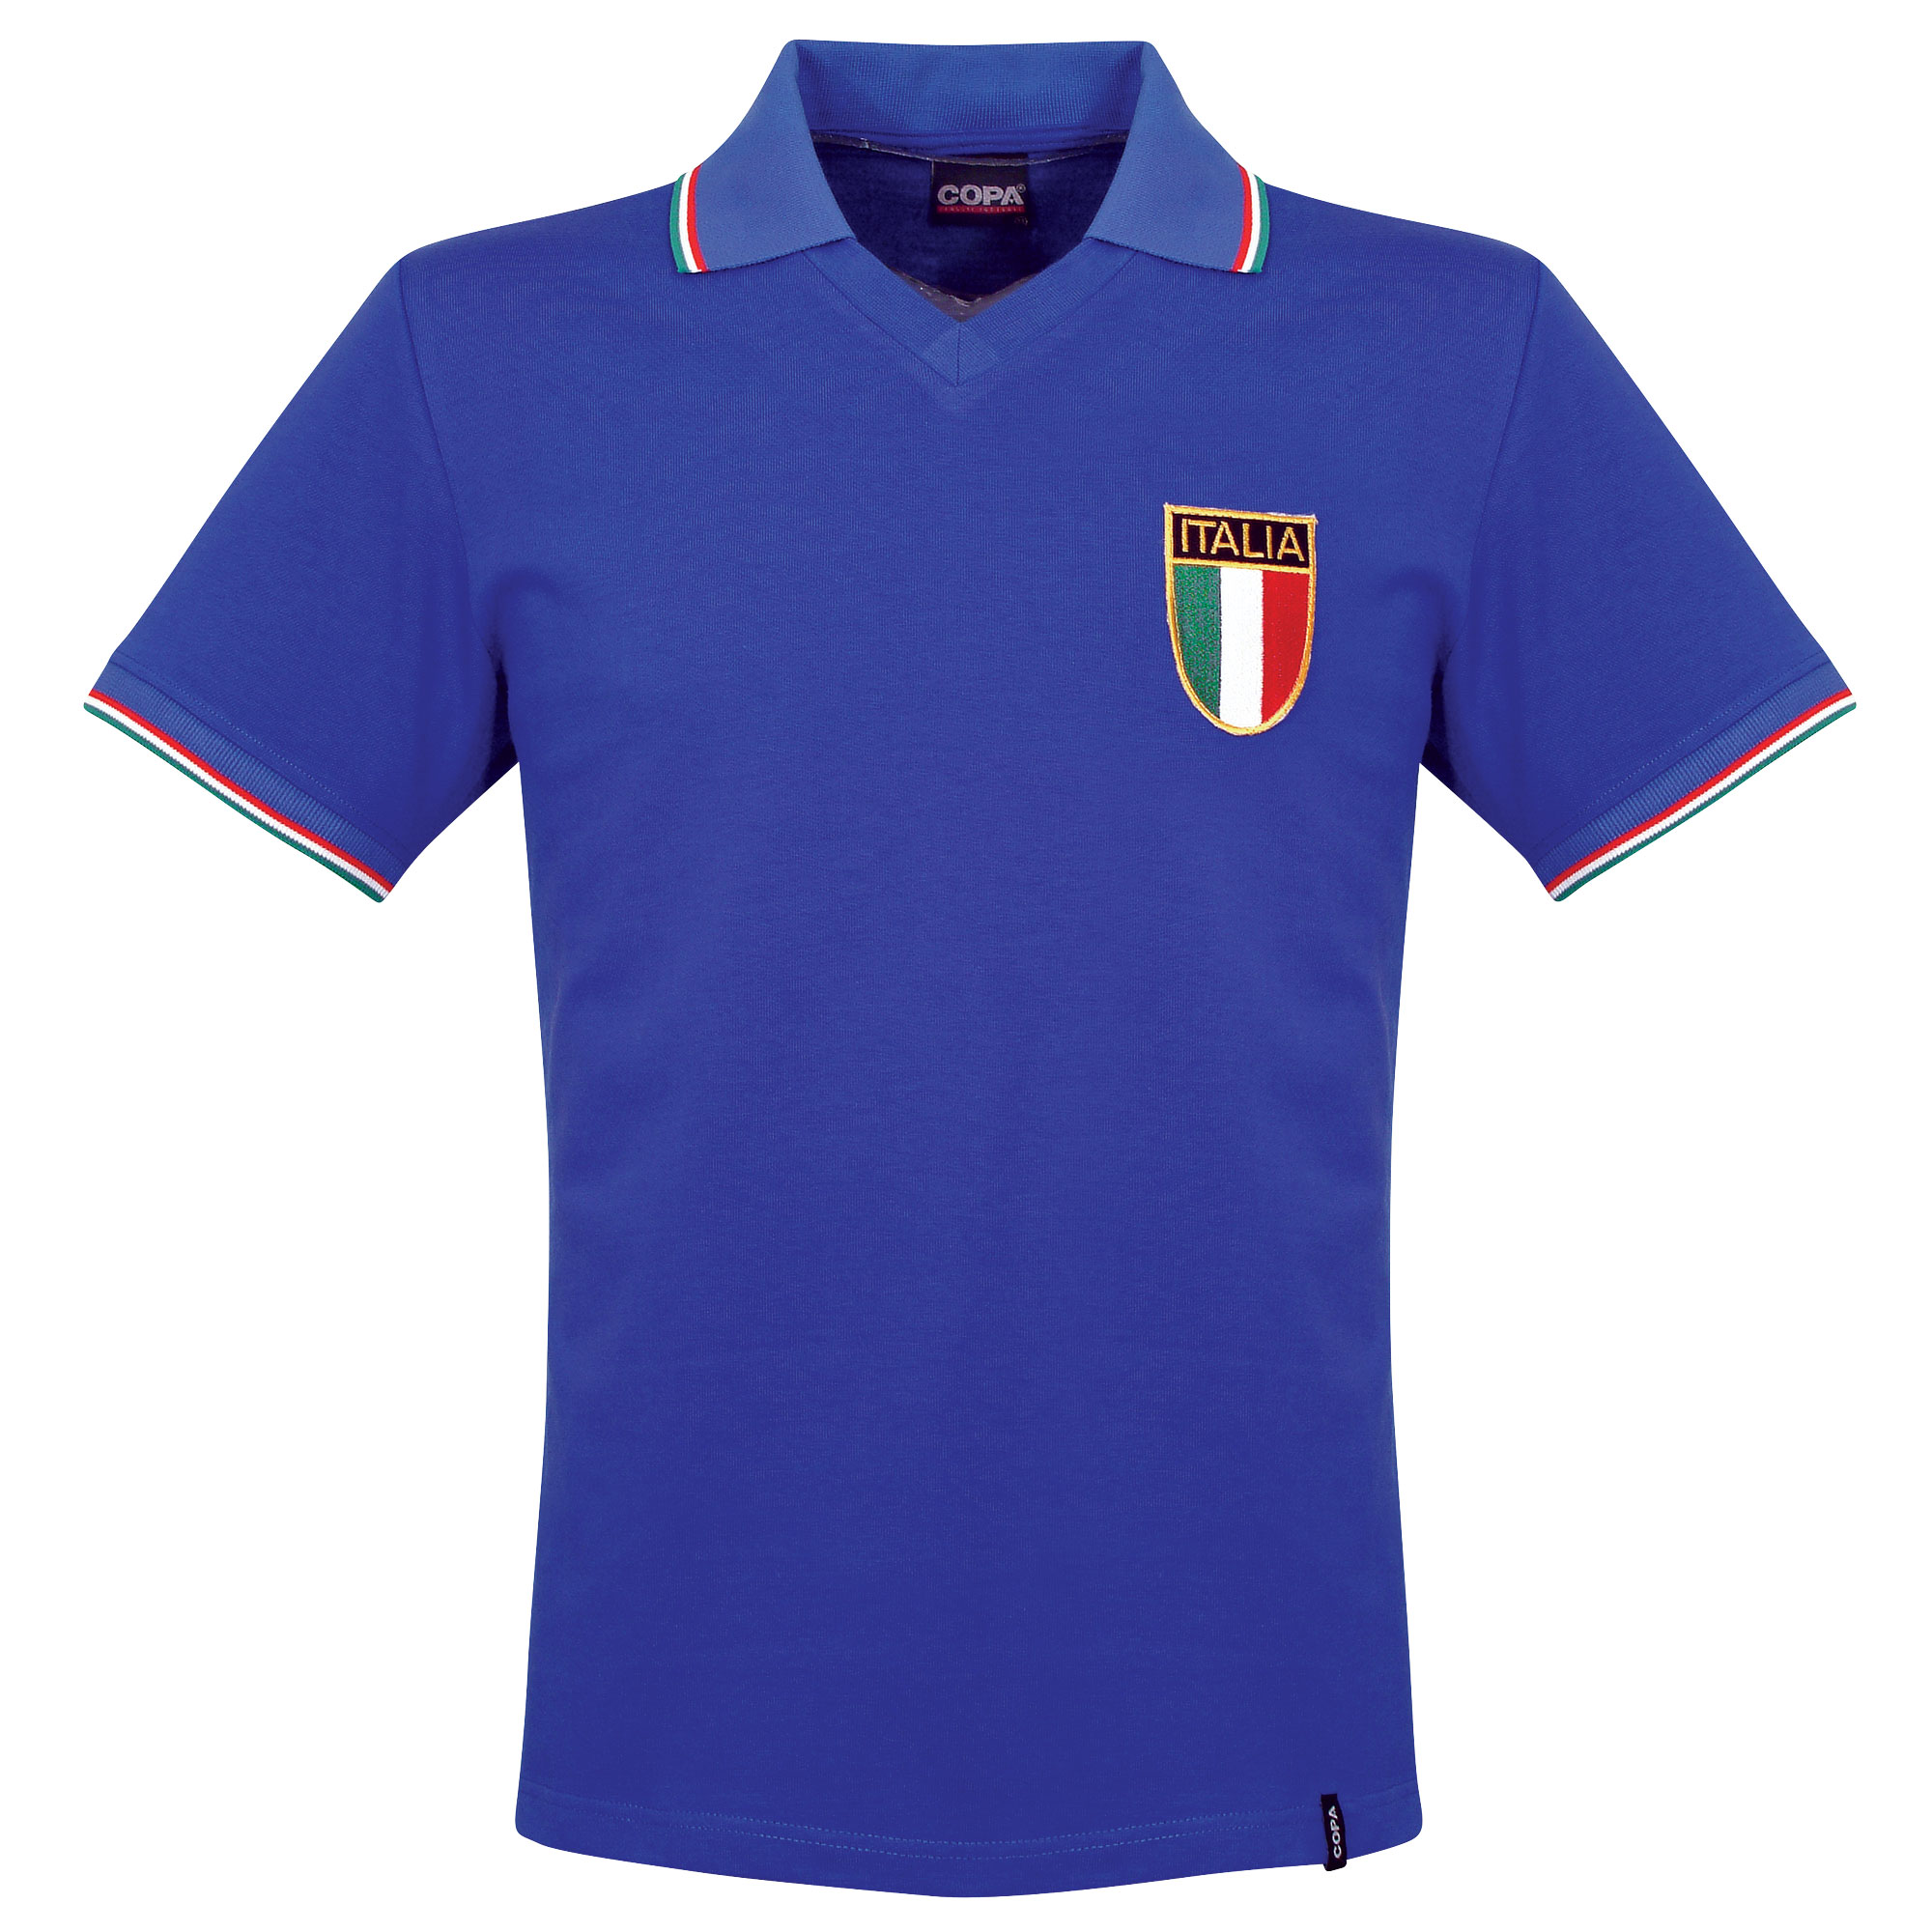 1982 Italy Home Retro Shirt - XXL